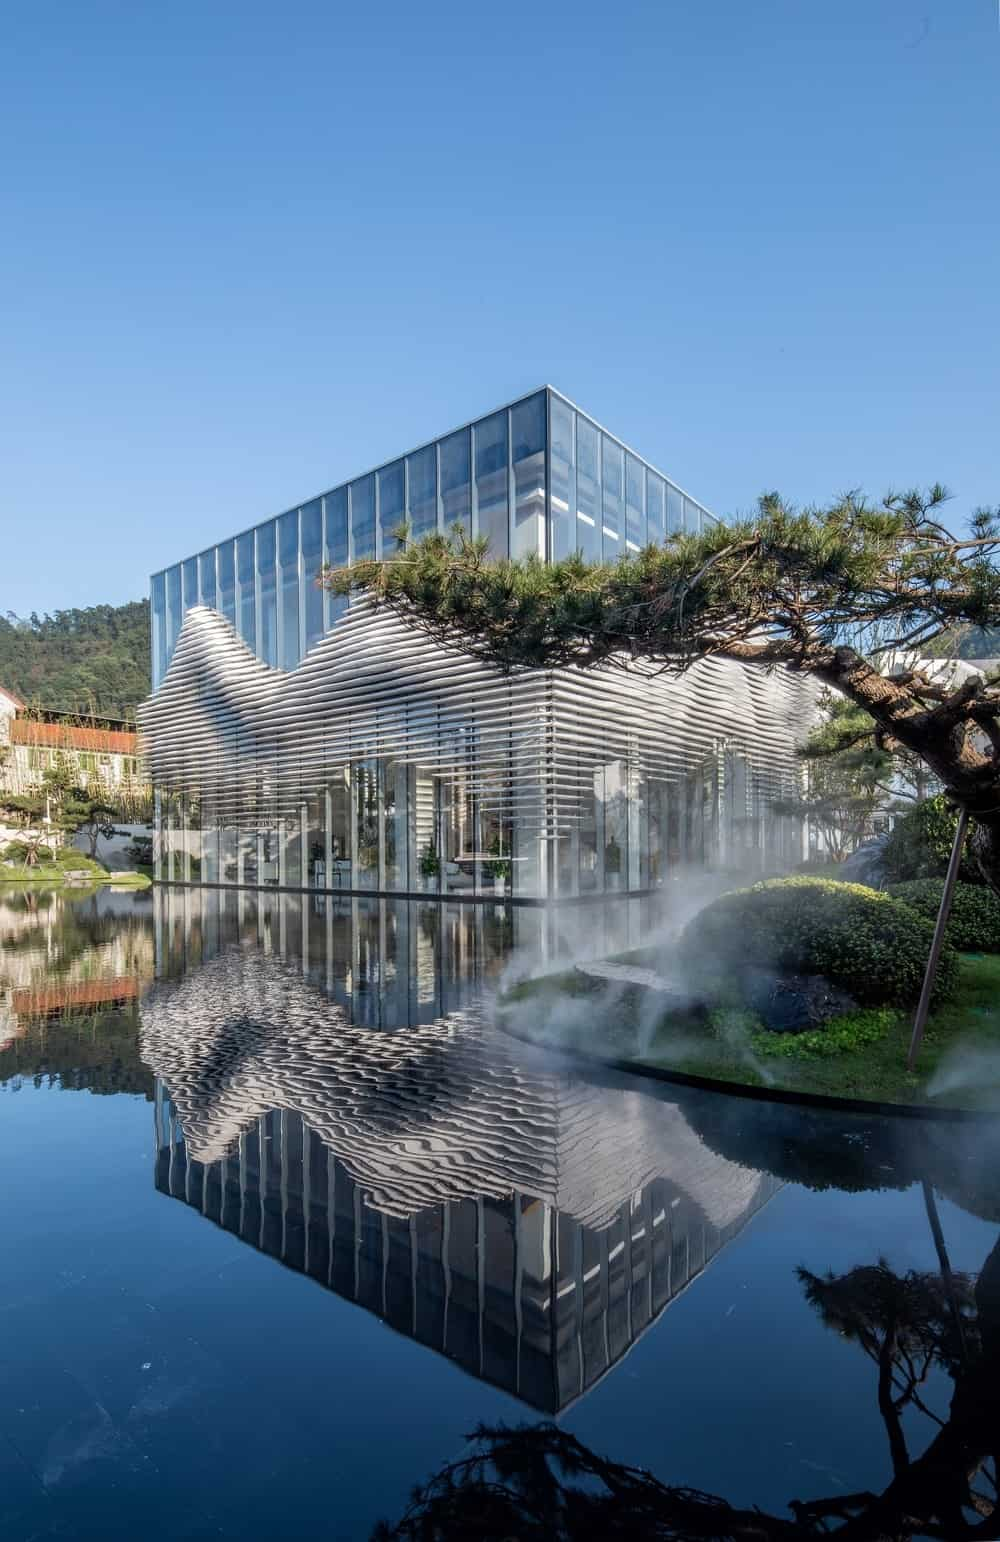 The water structure that augments the structure is softened up further by the zen-like tree.